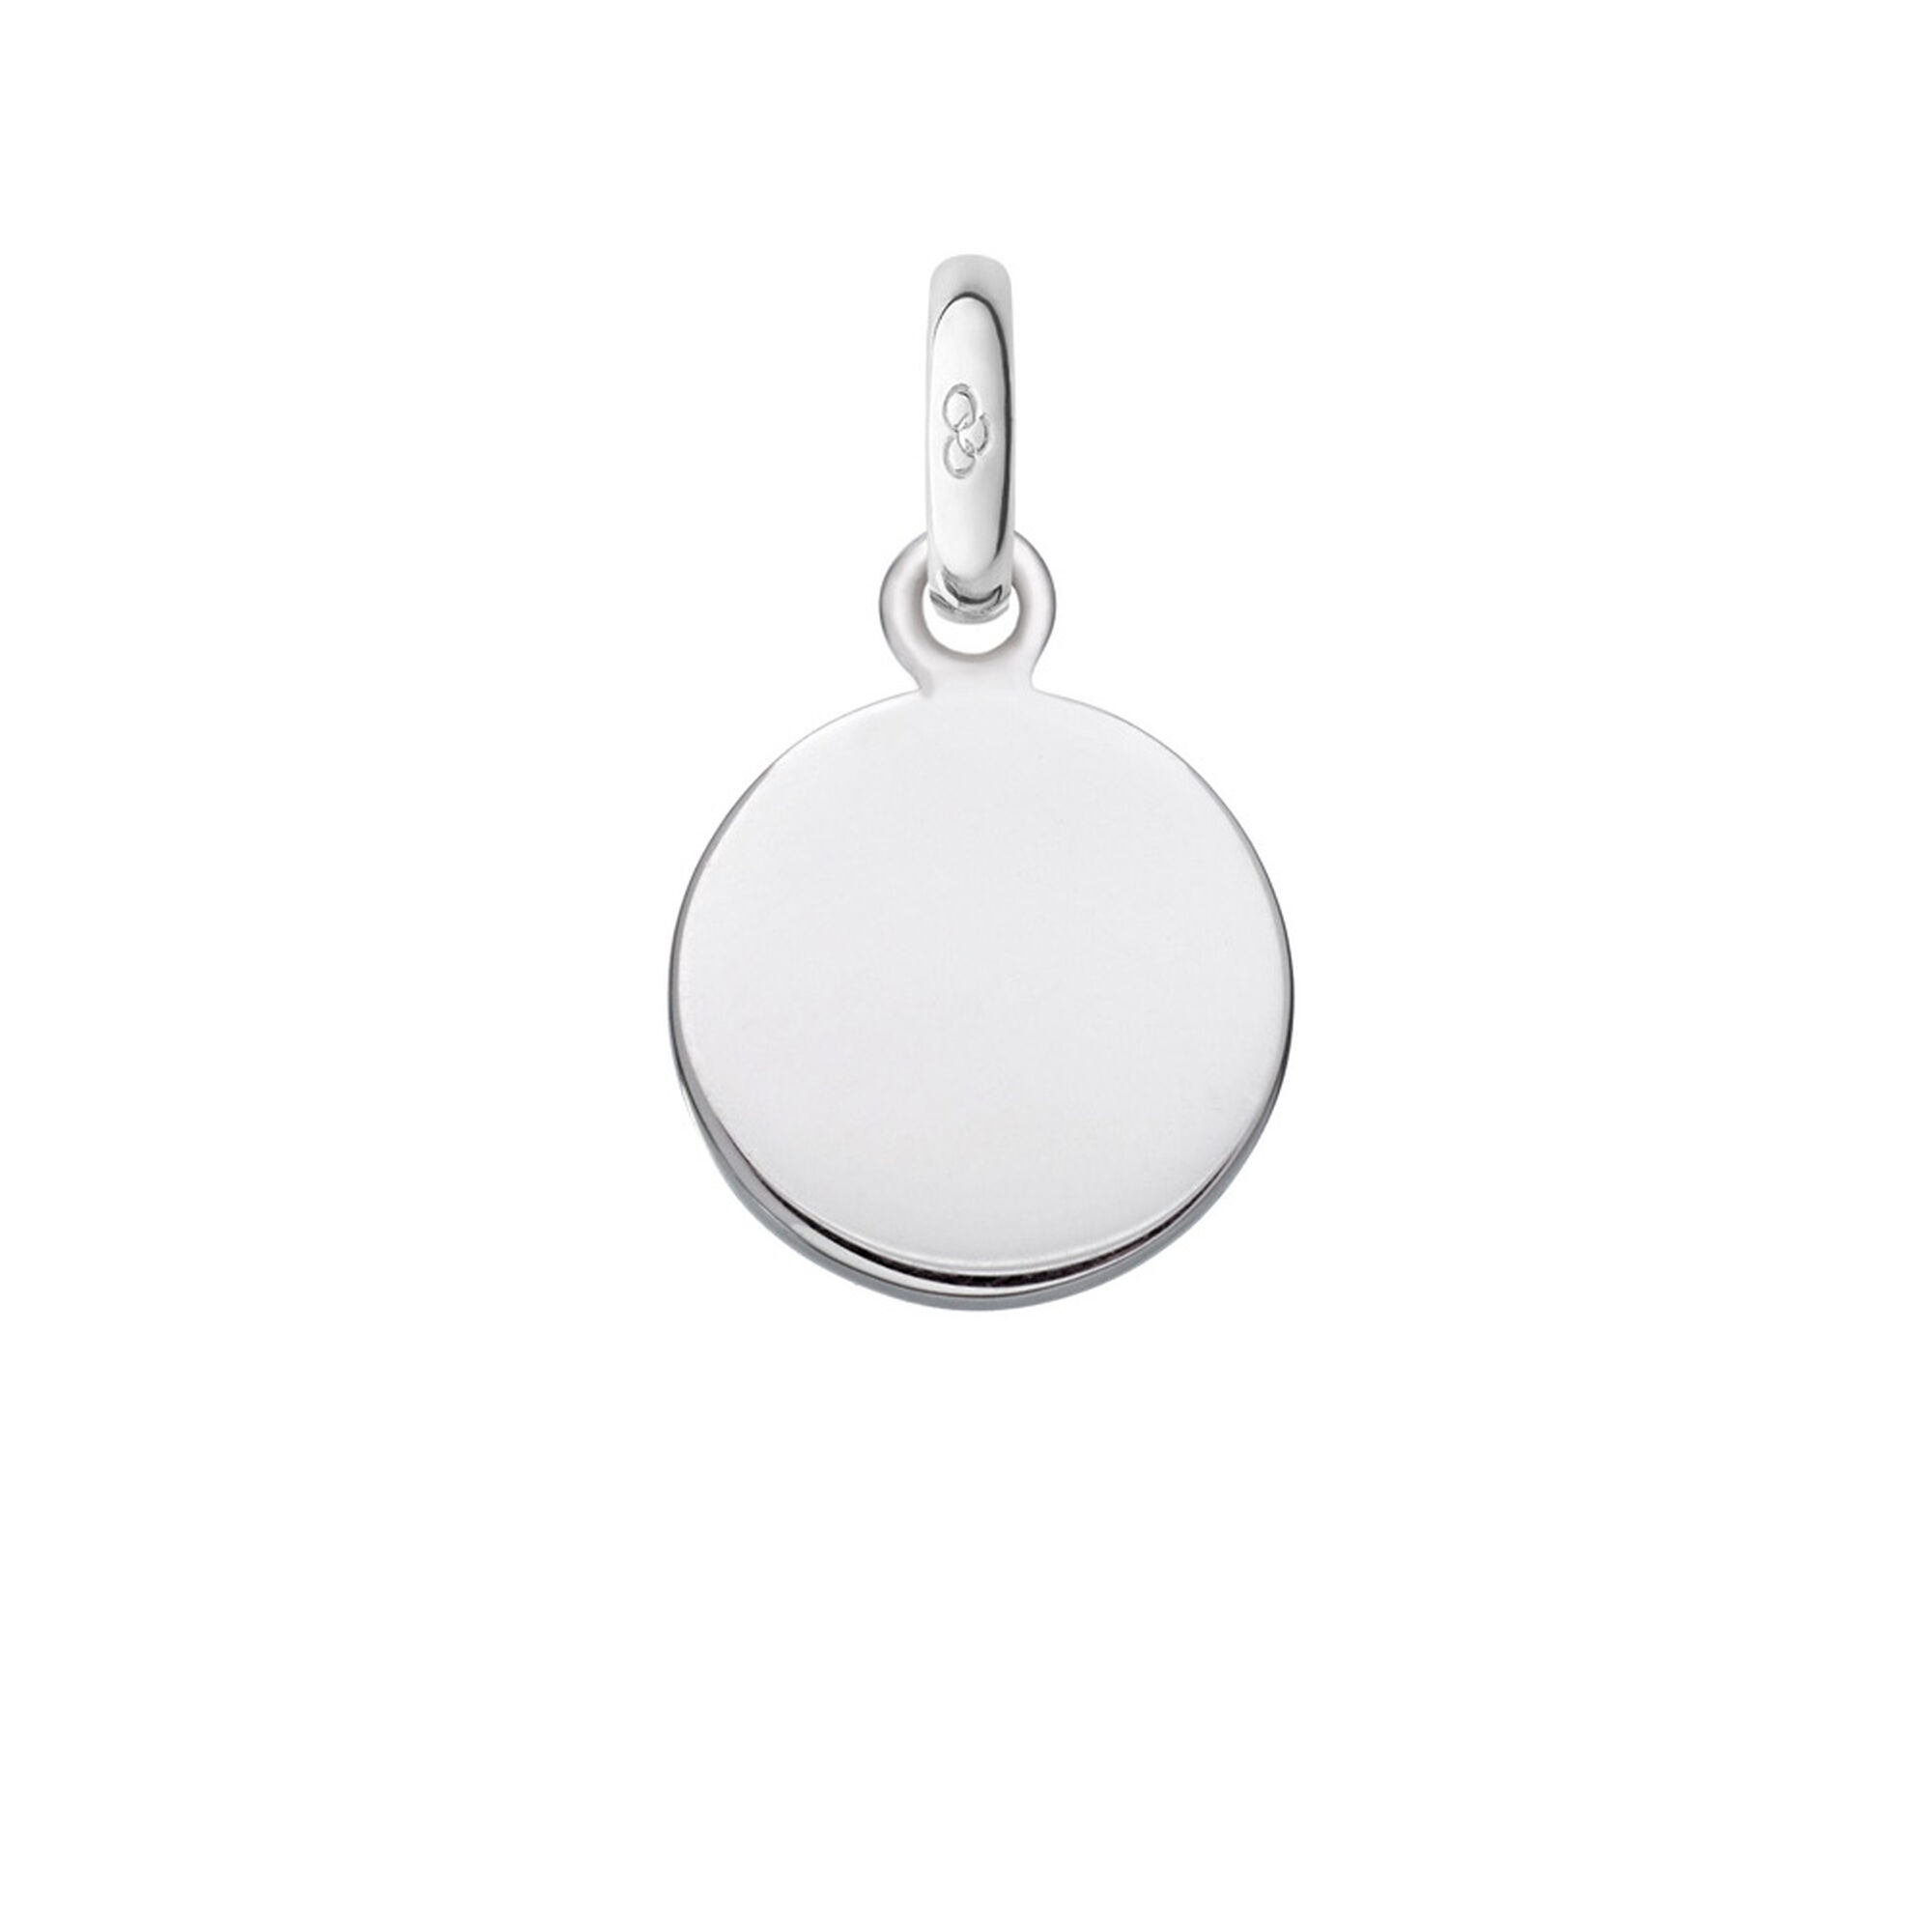 Silver disc charm charms for women links of london sterling silver disc charm hires mozeypictures Choice Image